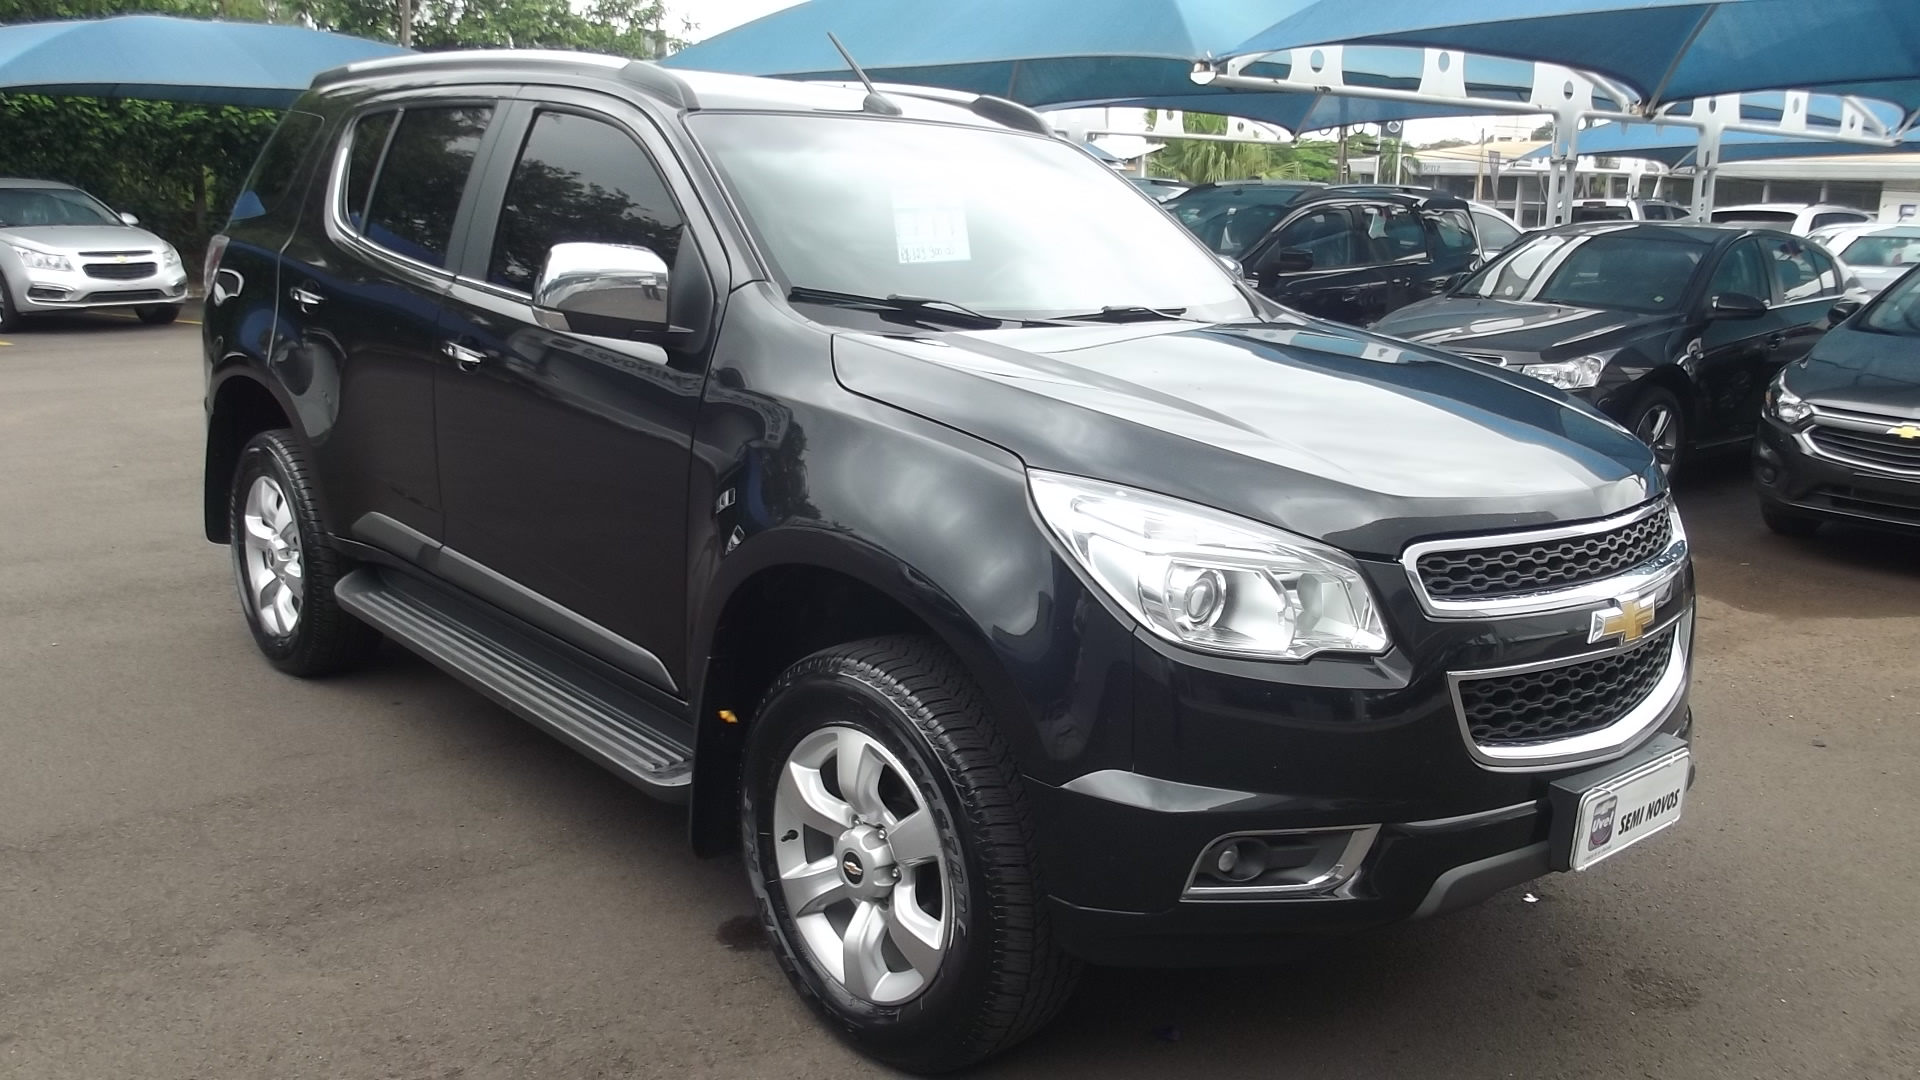 Chevrolet TRAILBLAZER LTZ 2.8 2013